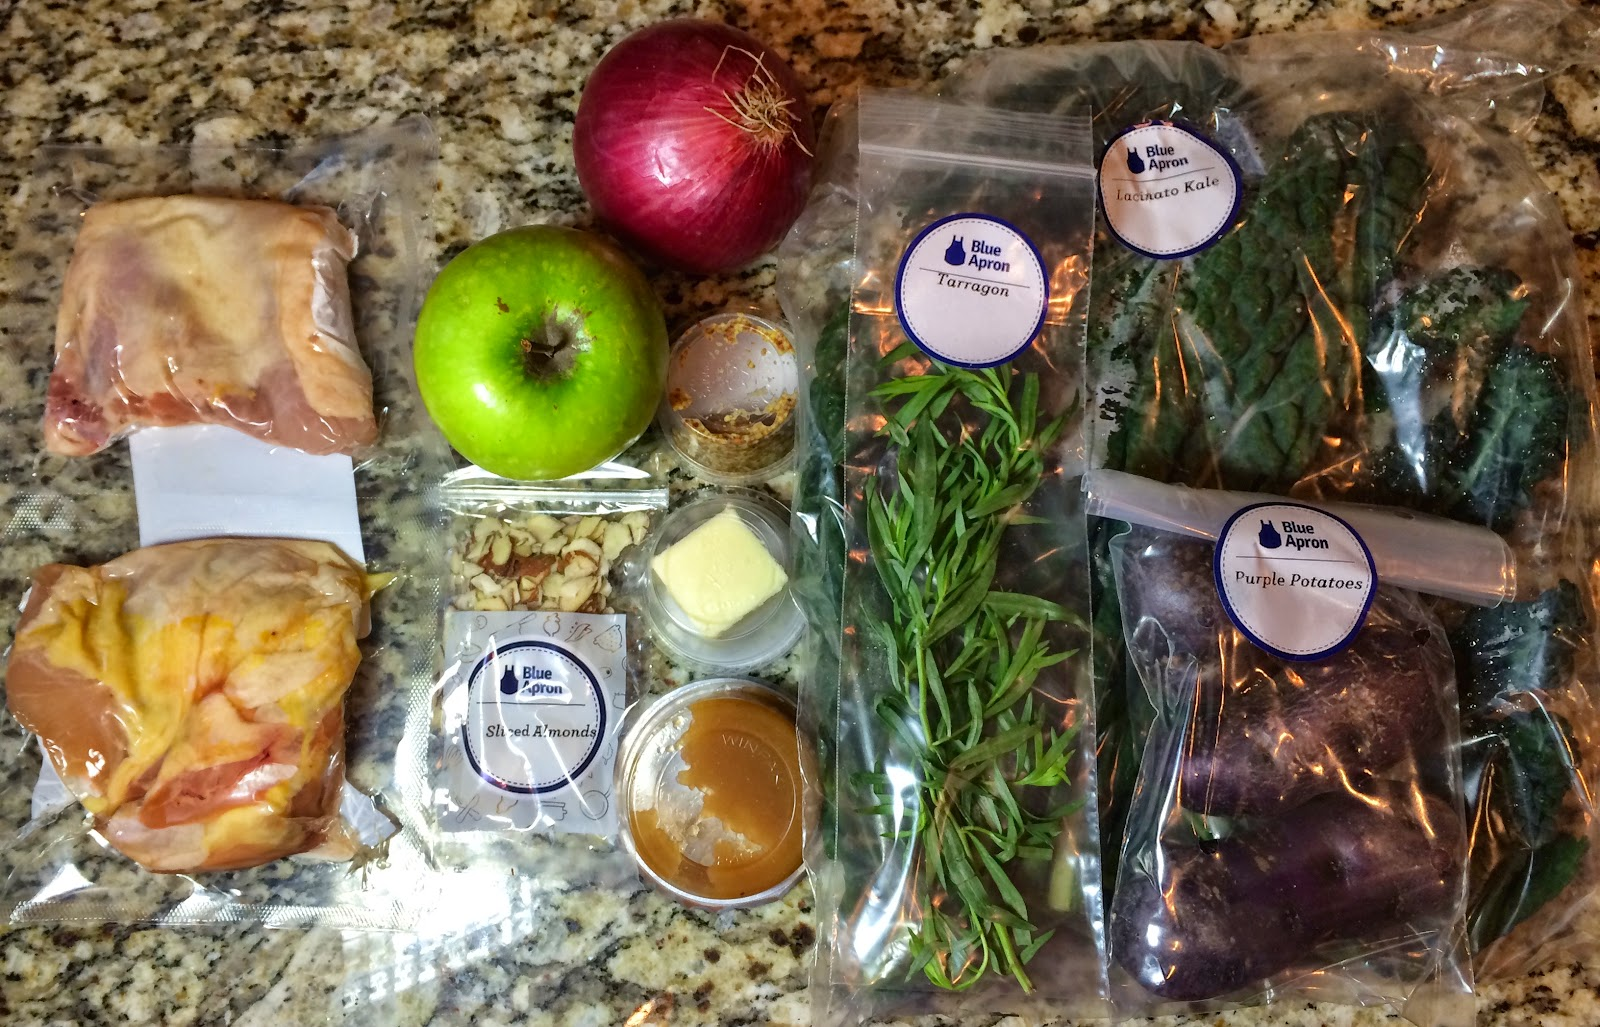 Blue apron kale hash - Ingredients For Pan Roasted Chicken With Lacinato Kale Purple Potato Hash